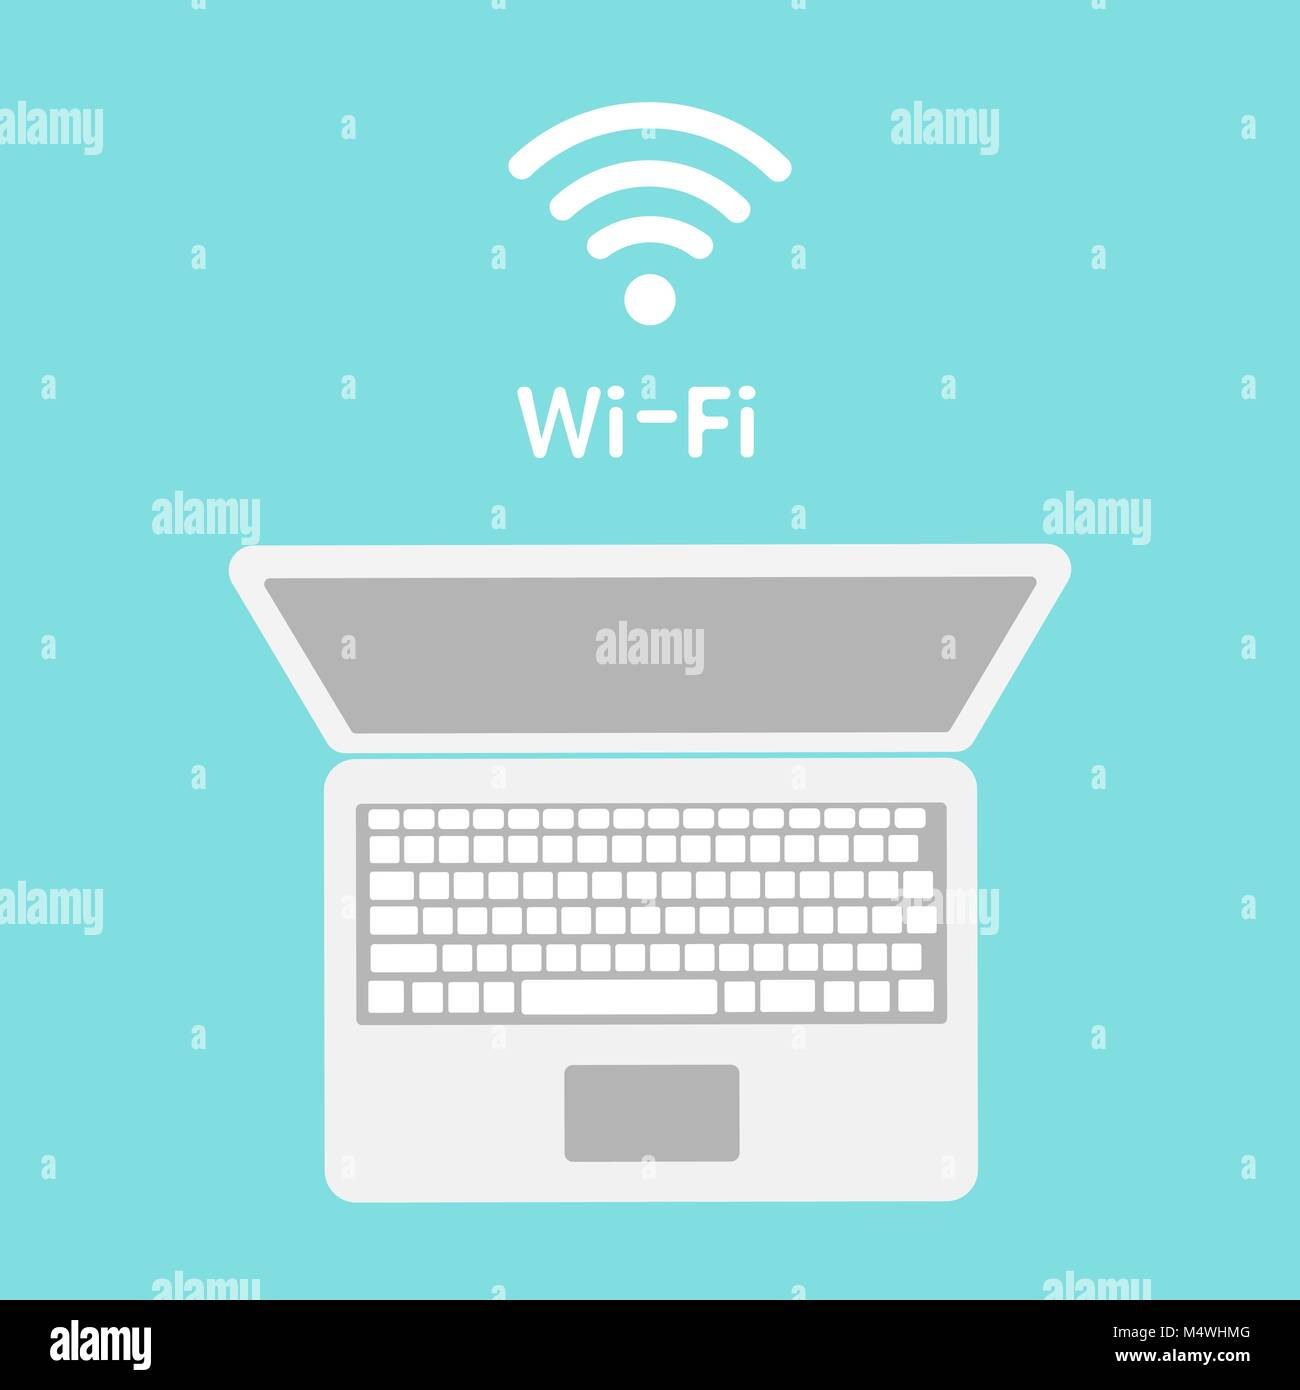 Wi-Fi icon on laptop screen. Wireless technology, wifi connection, wireless network, hotspot concepts. Modern flat - Stock Image